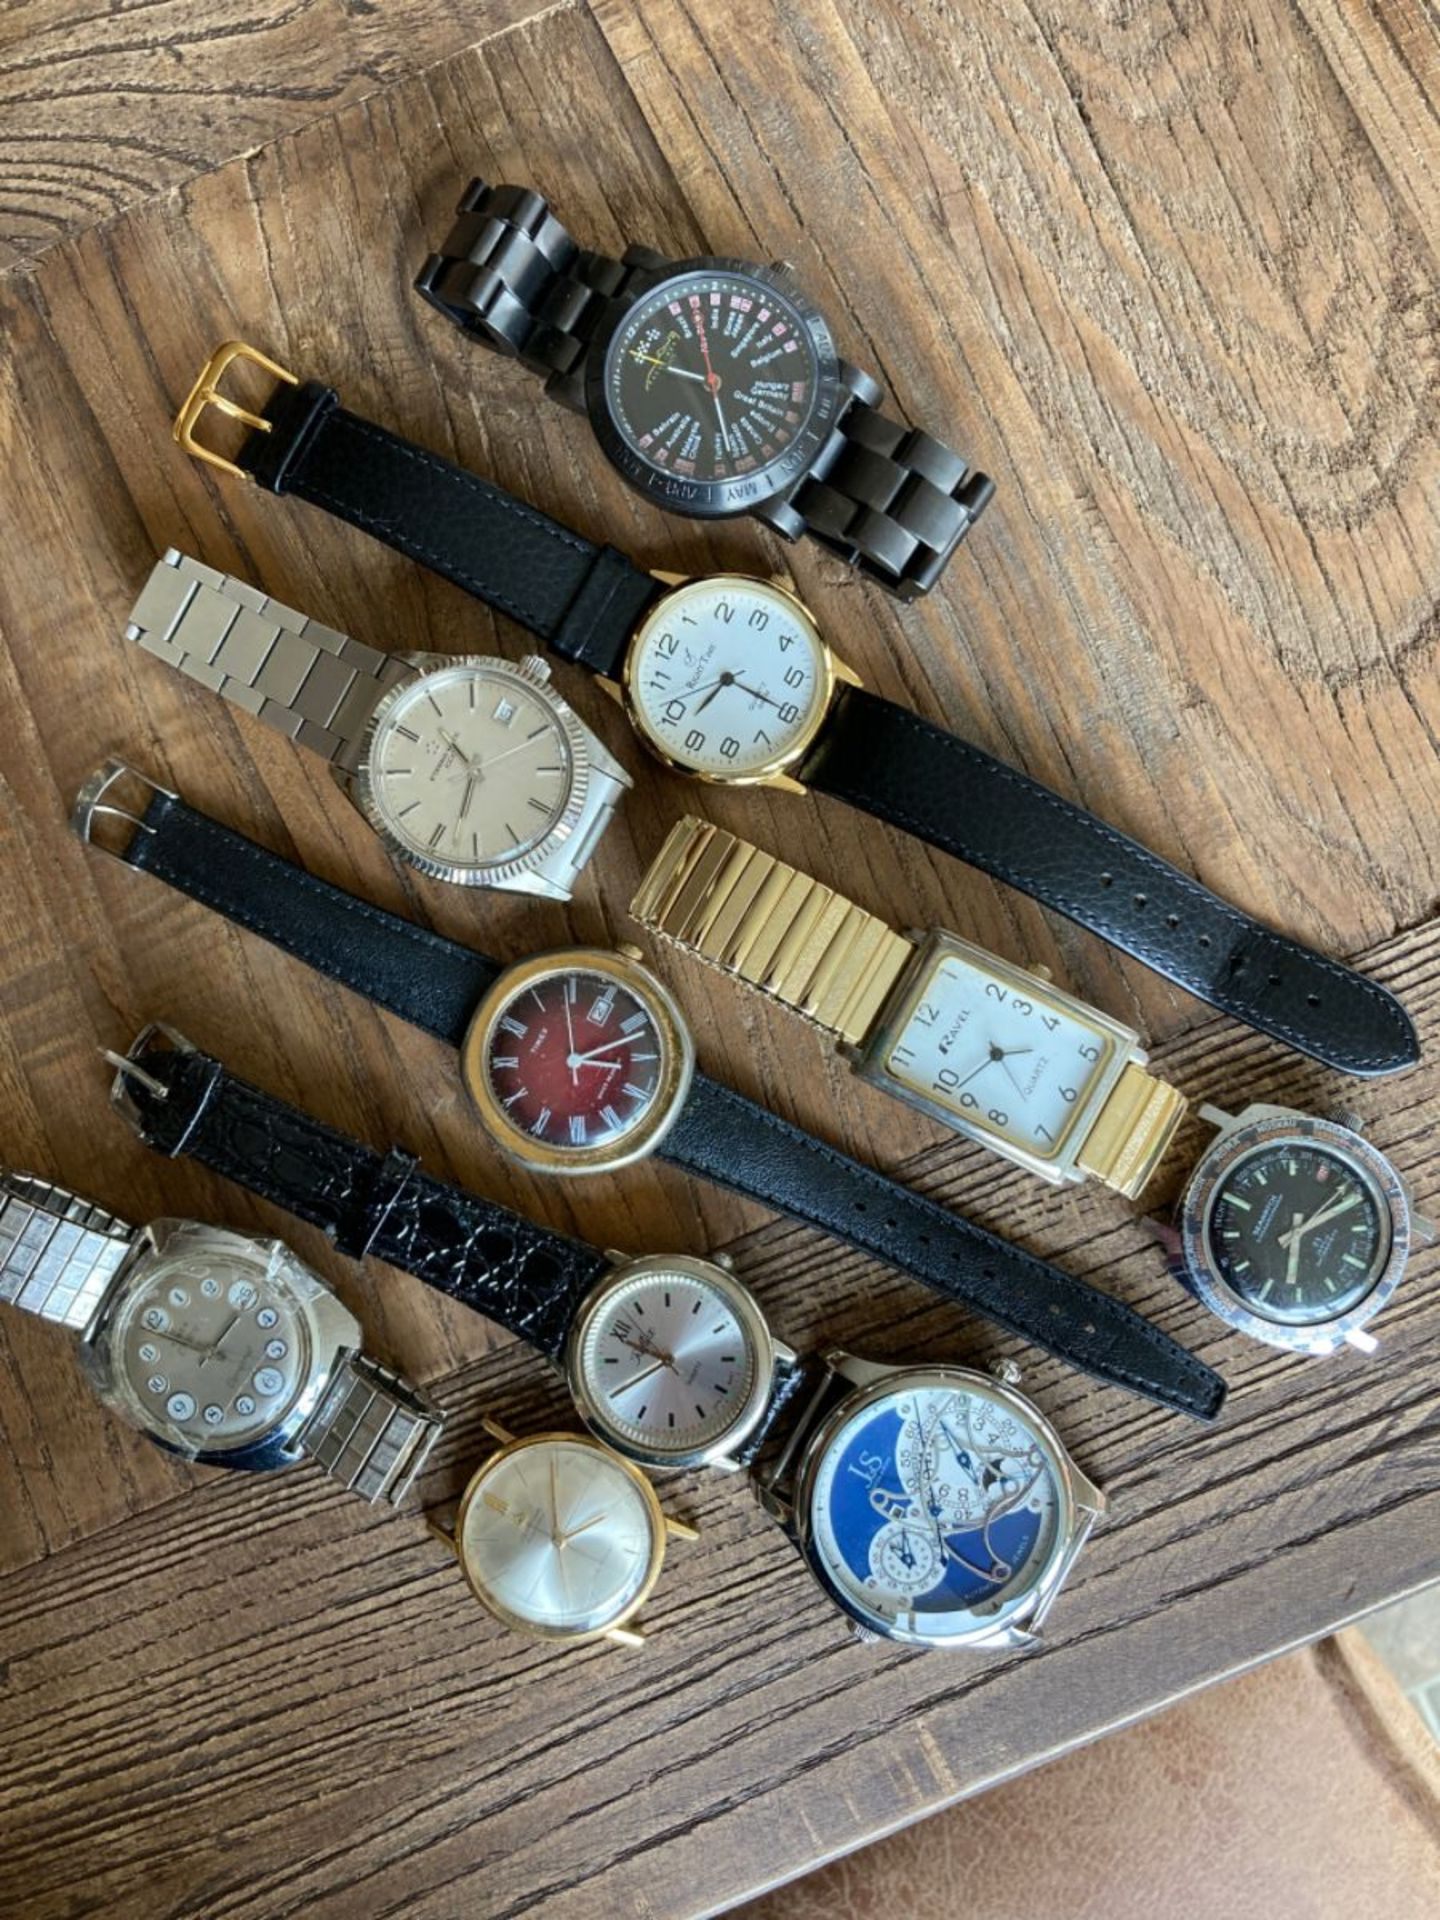 MIXED WATCHES INC SEAWATCH, JOSHUA AND SONS ETC - Image 2 of 4